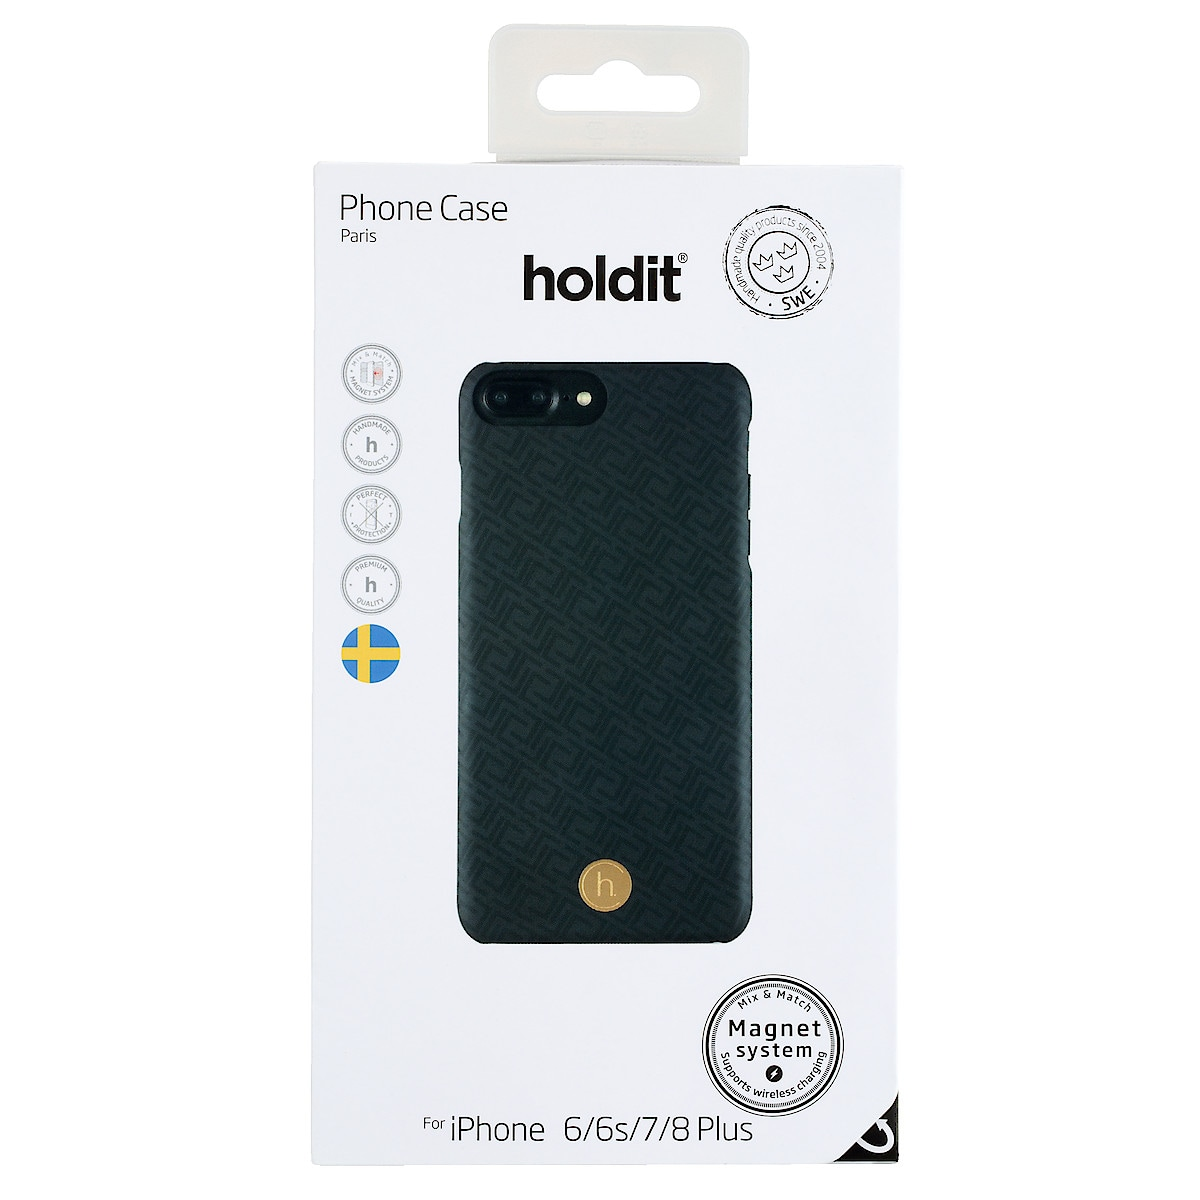 Holdit mobildeksel for iPhone 8 Plus